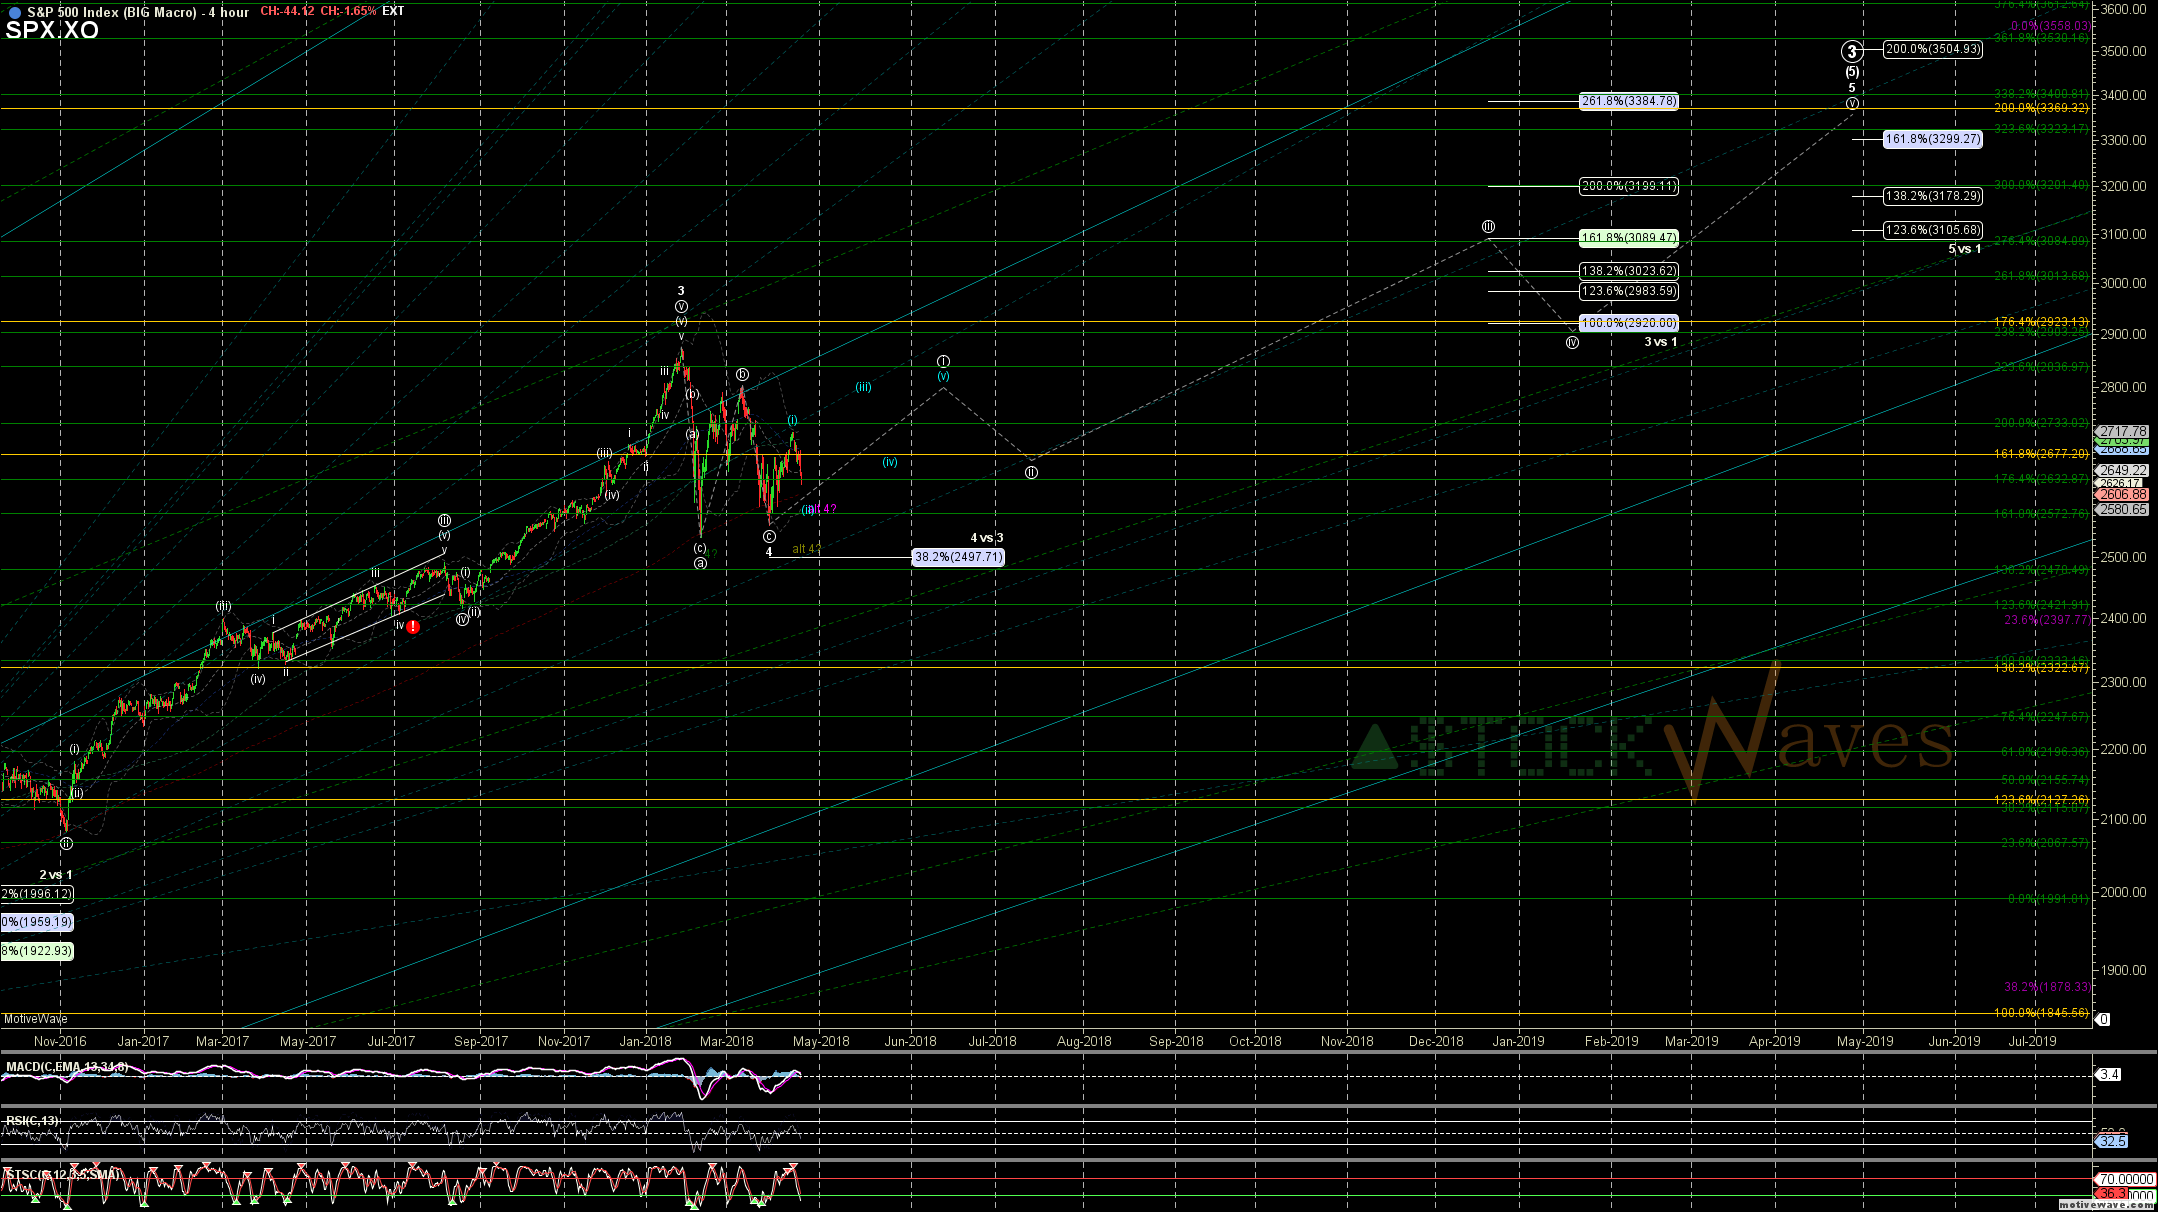 SPX.XO - BIG Macro - Apr-24 1401 PM (4 hour)